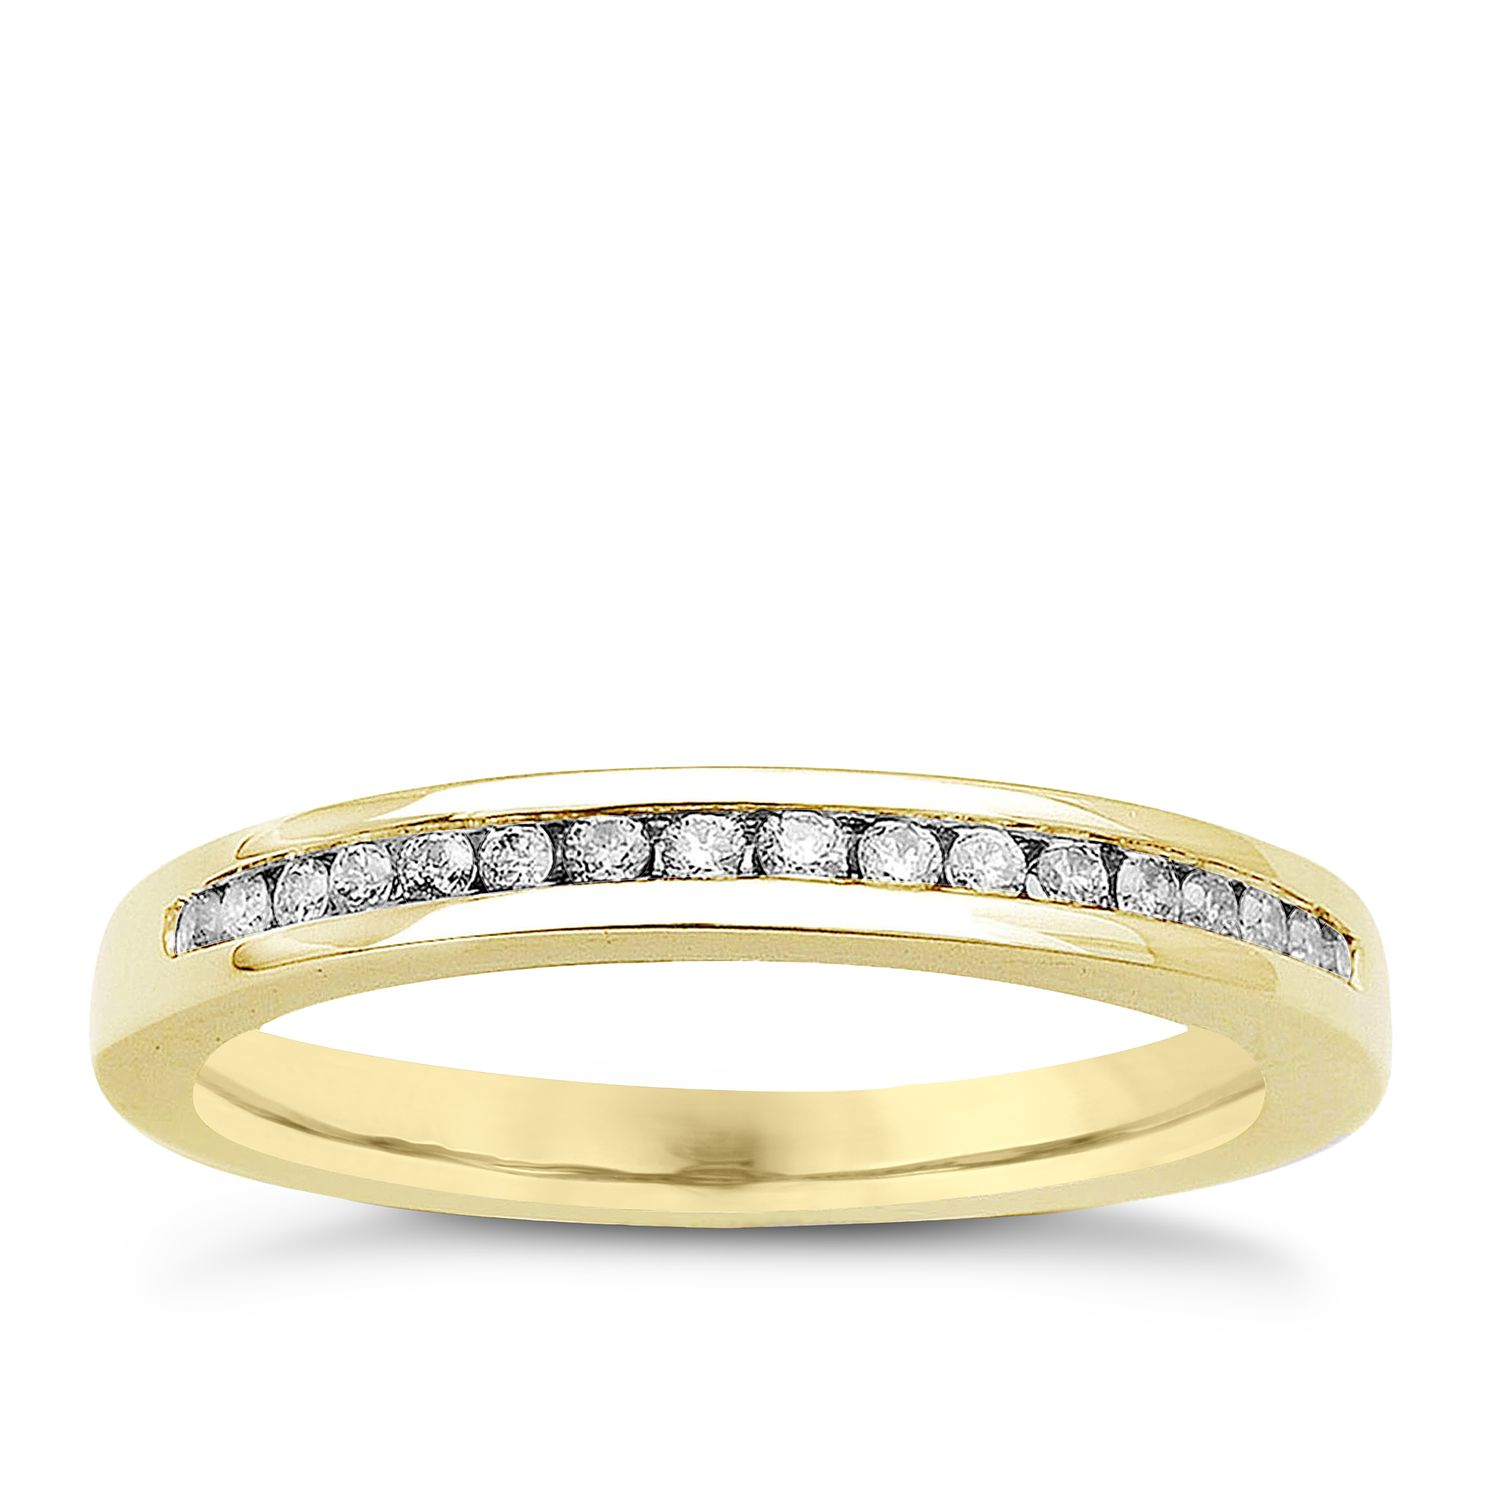 Perfect Fit 18ct Yellow Gold & Diamond Eternity Ring - Product number 9443398